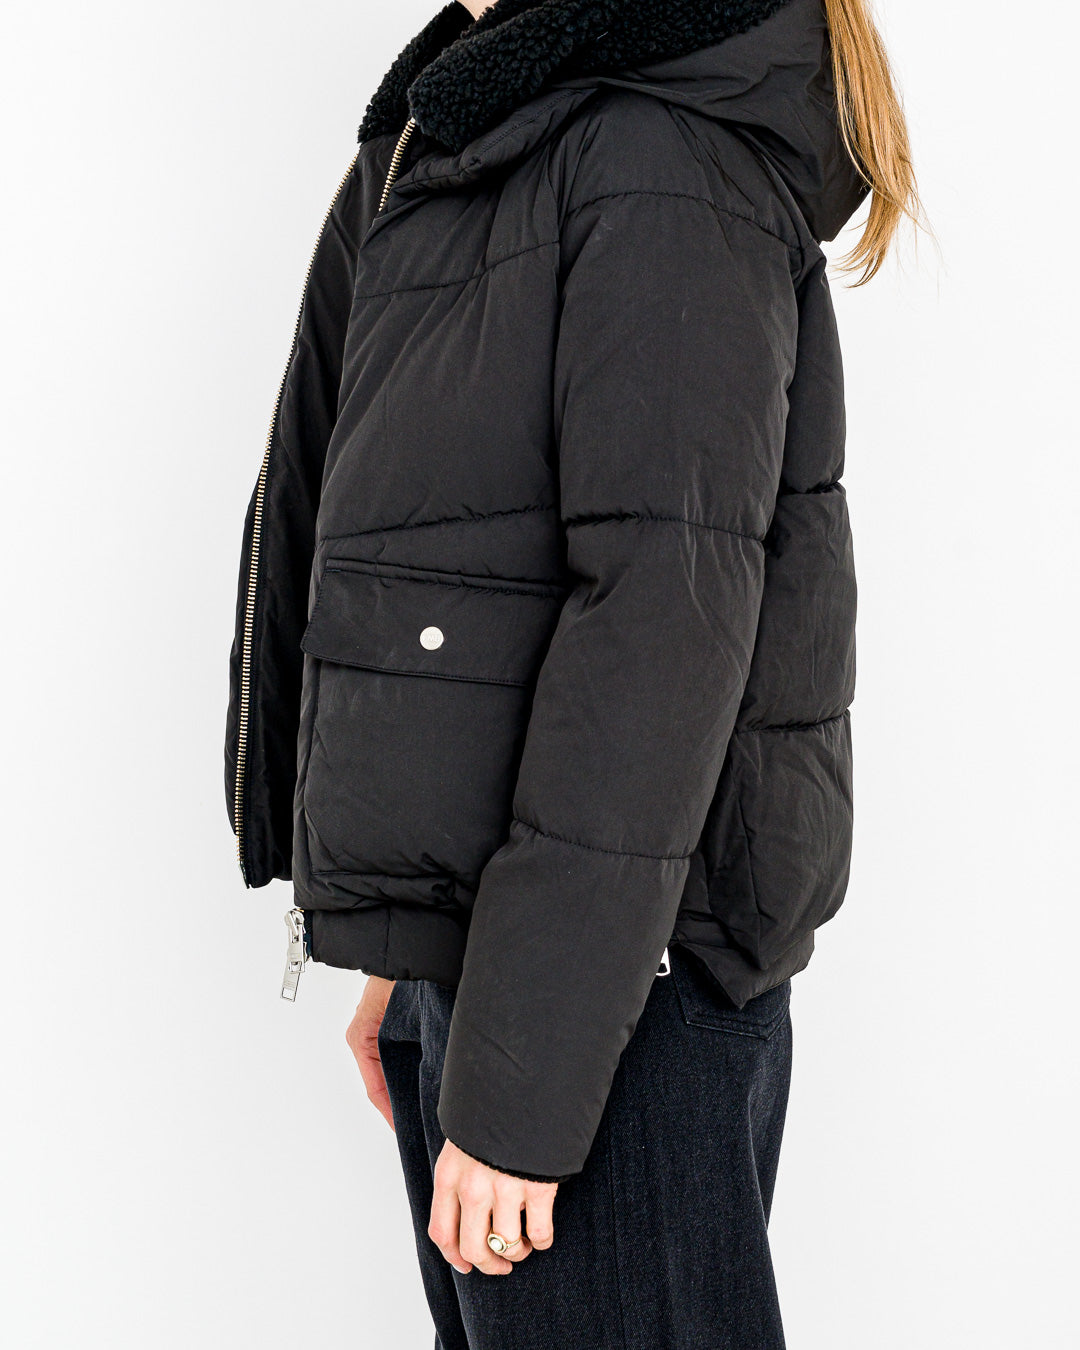 Embassy of Bricks and Logs // Vegane Winterjacke Leicester Black